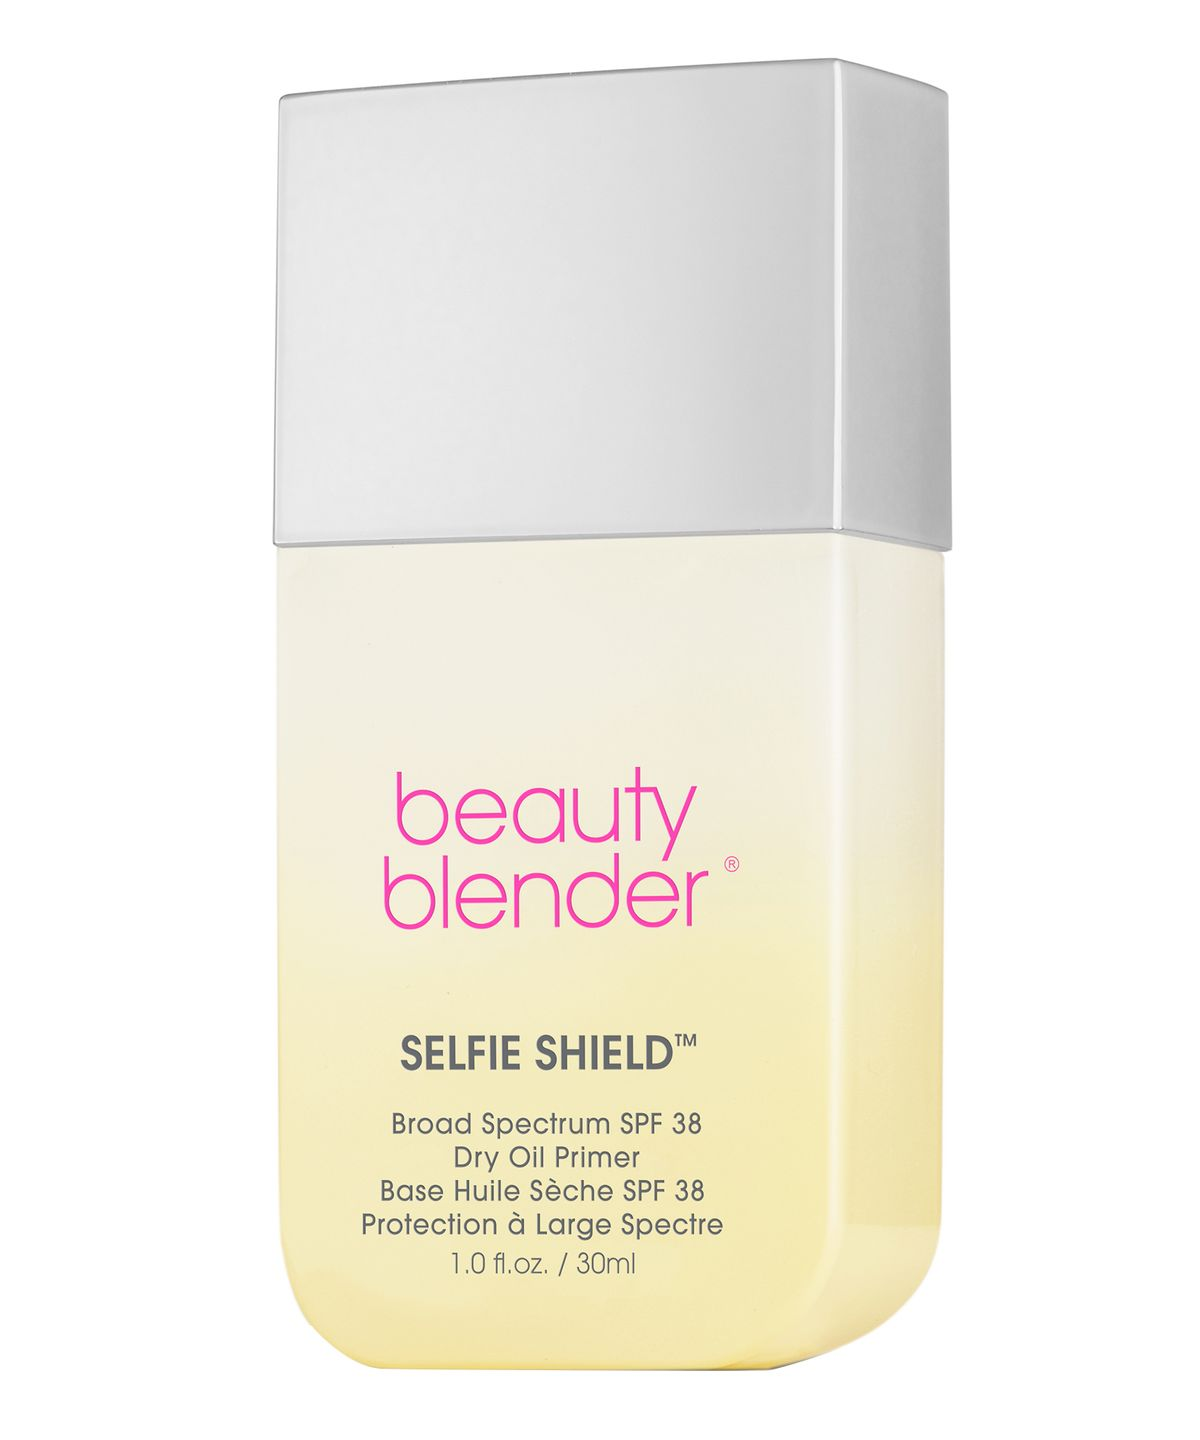 Beauty Blender Selfie Shield Broad Spectrum Spf 38 Dry Oil Primer